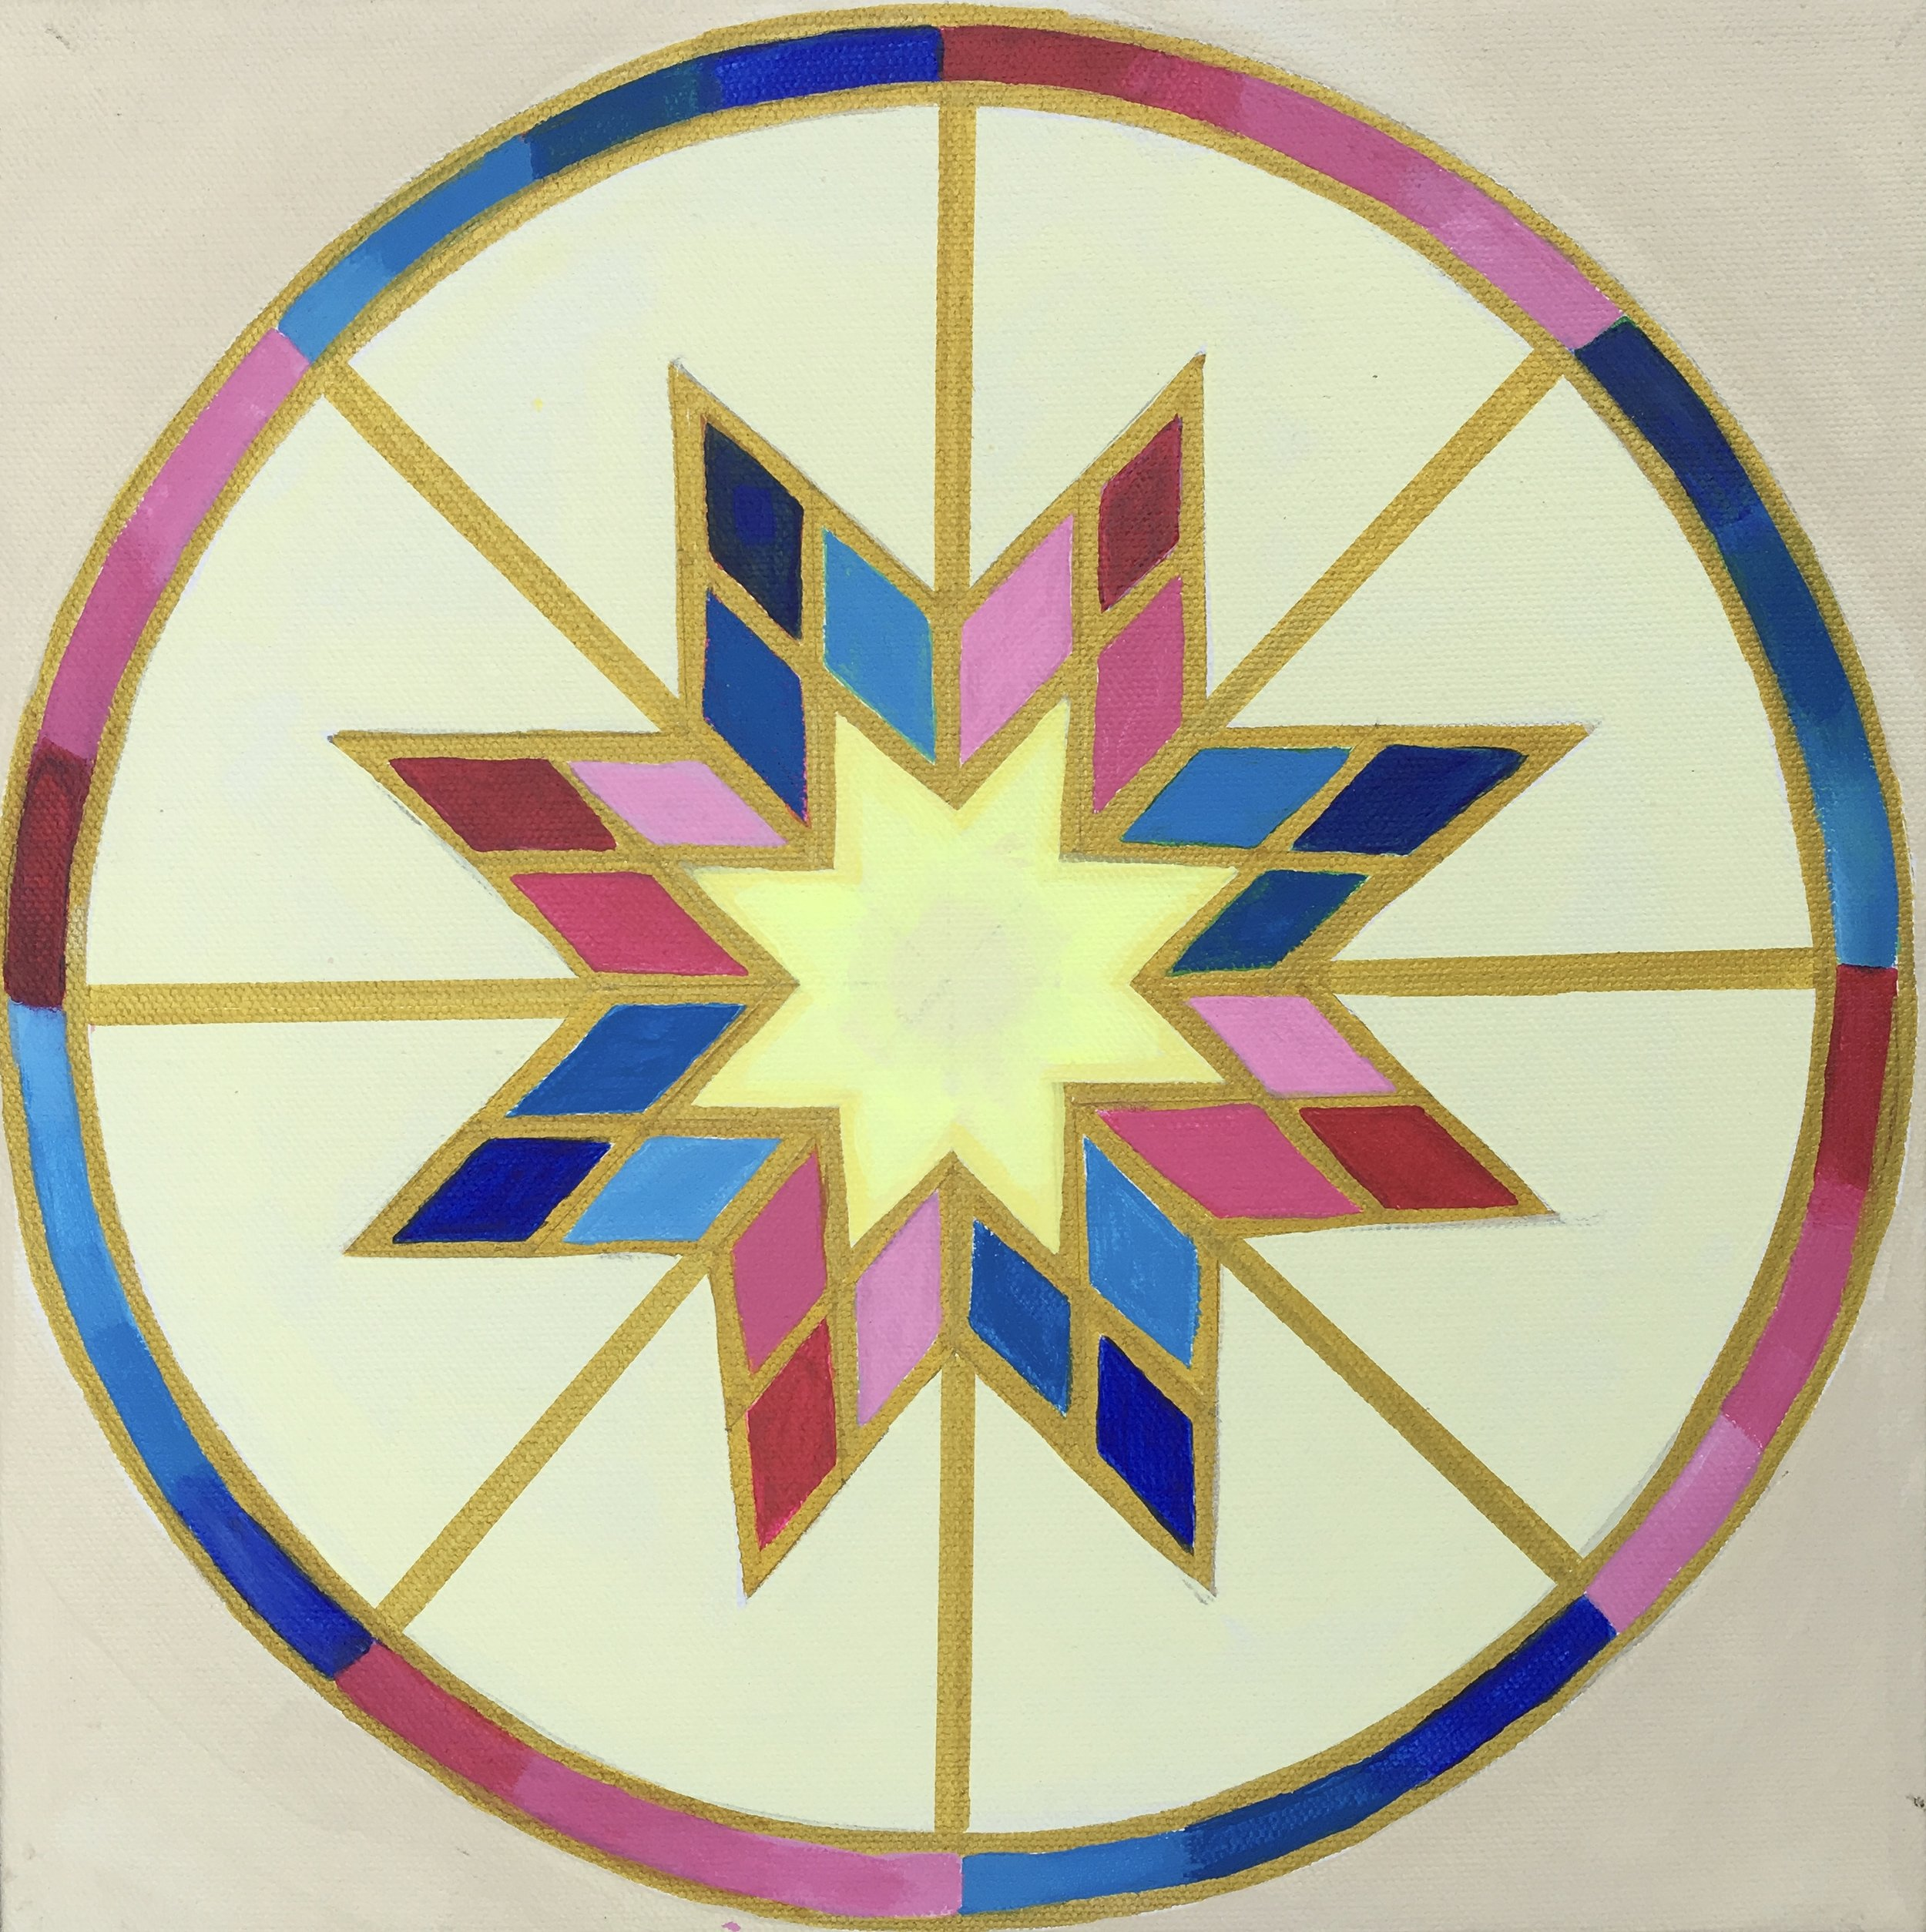 Artwork - This mandala combines the Native American style with Buddhist color symbolism.  Combining cultures can be a fun way to create original designs.